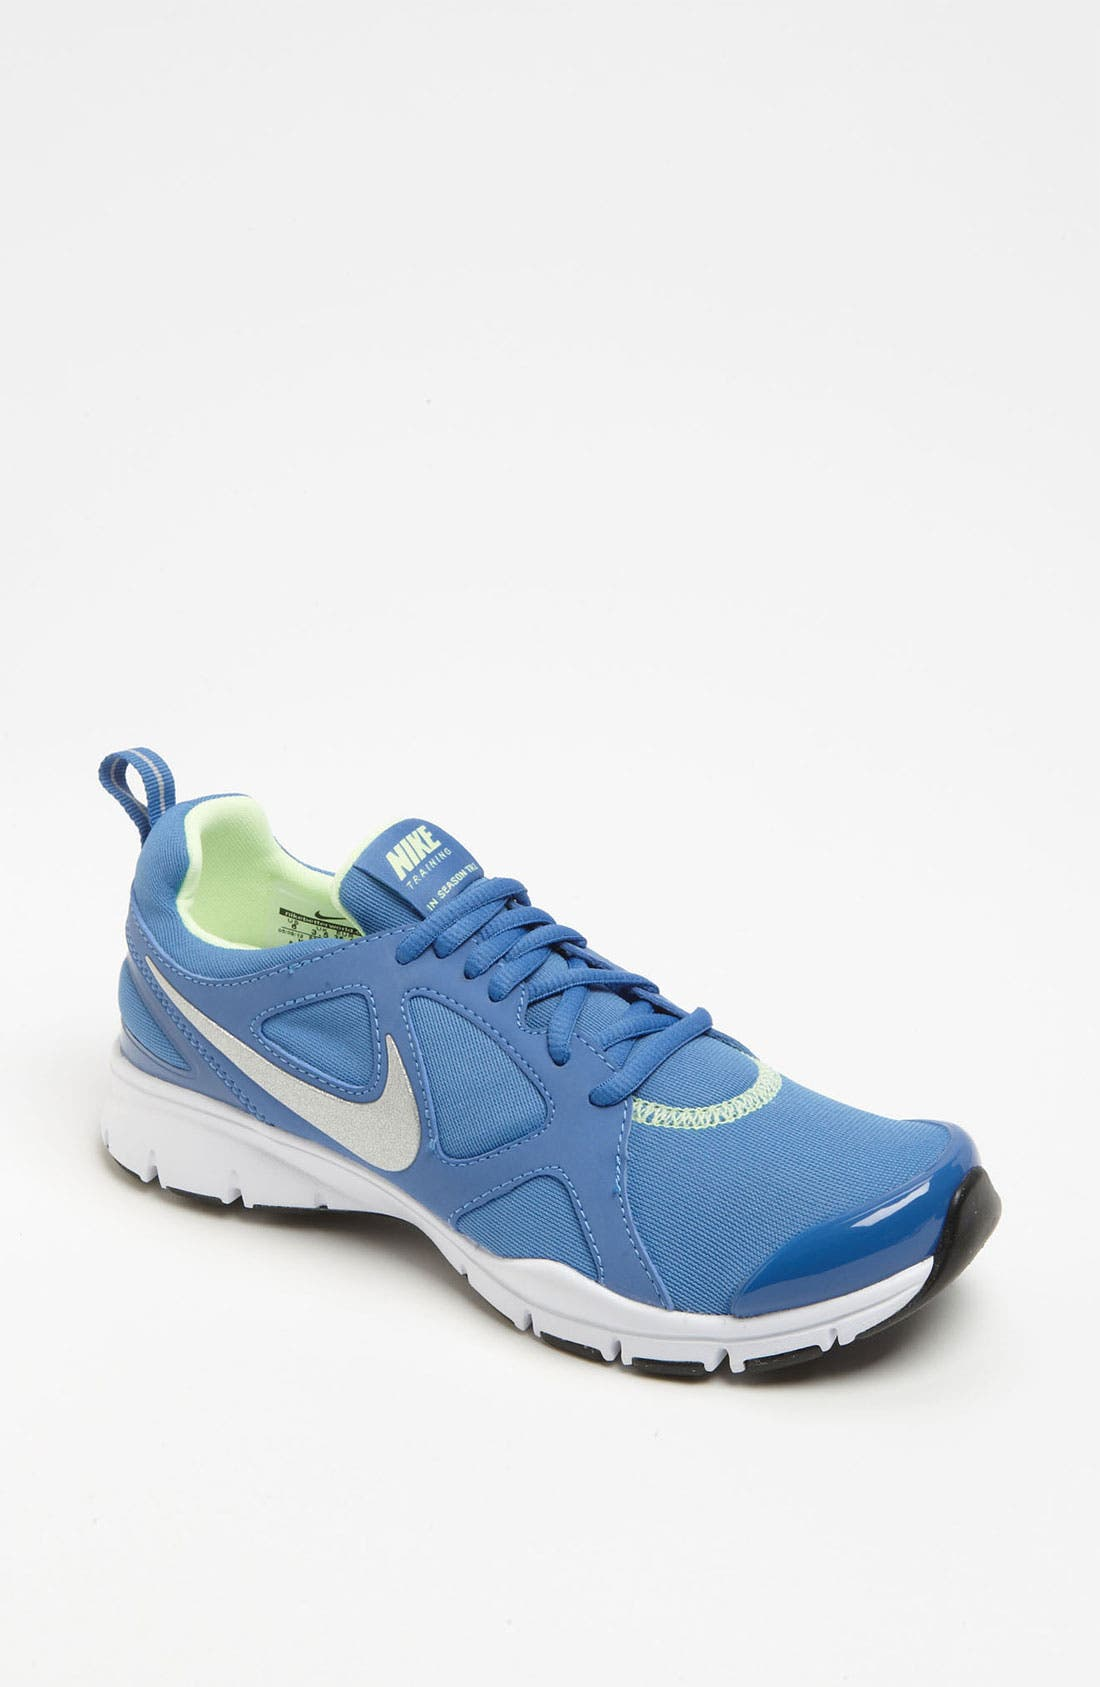 Main Image - Nike 'In Season 2' Training Shoe (Women)